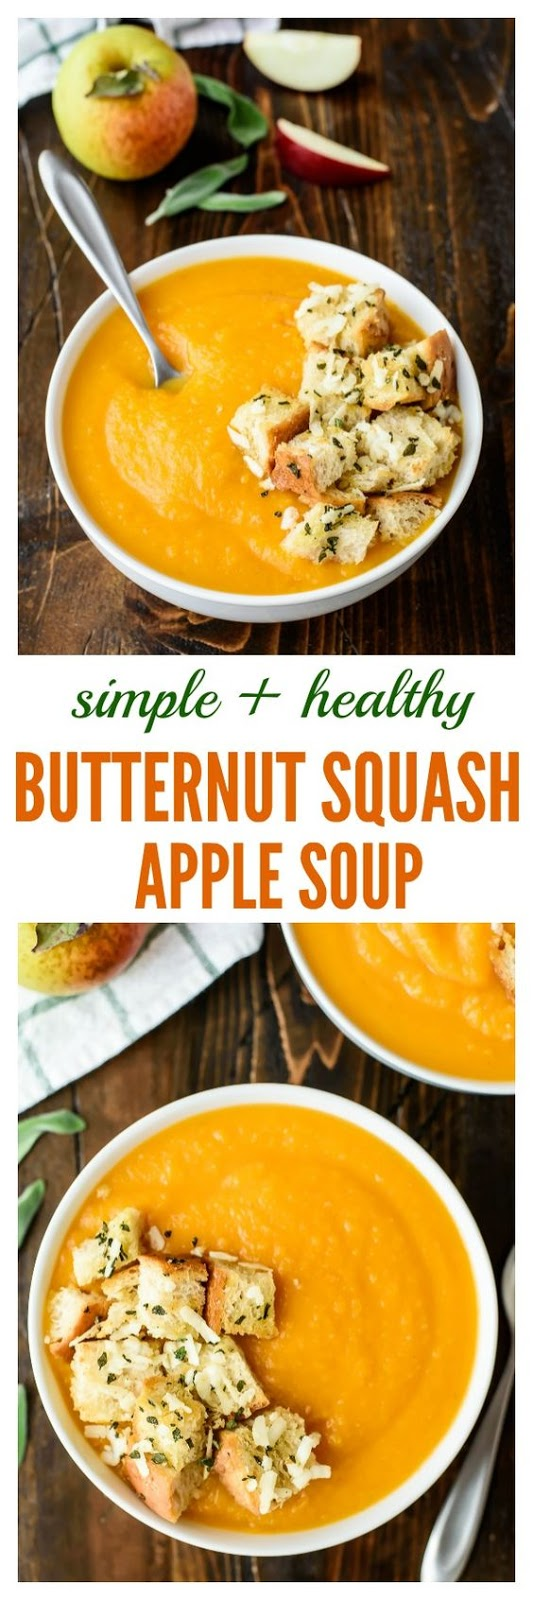 Butternut Squash Apple Soup with Sage Parmesan Croutons